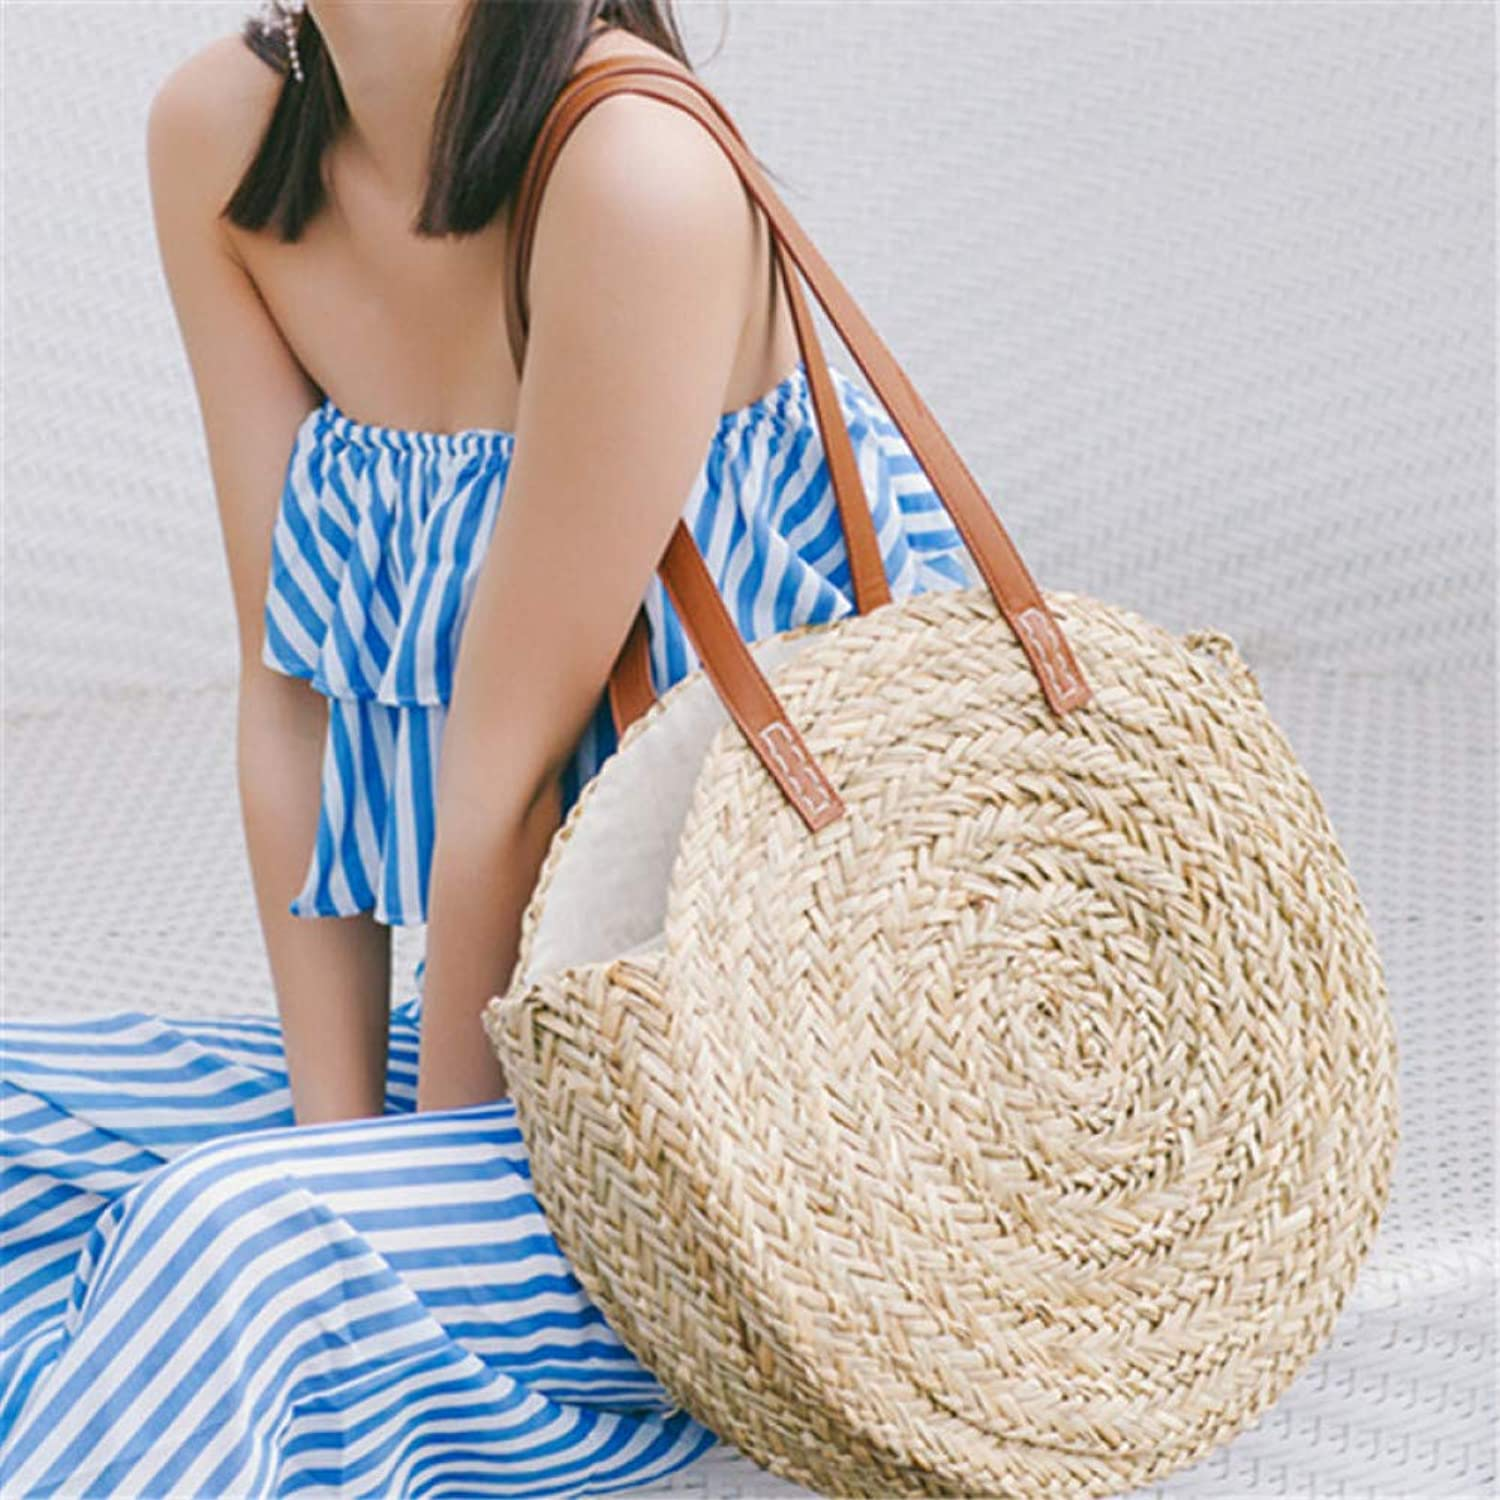 JQSM Mgoldccan Palm Basket Bag Women Hand Woven Round Straw Bags Natural Oval Beach Bag Big Tote Circle Handbag Dropshipping